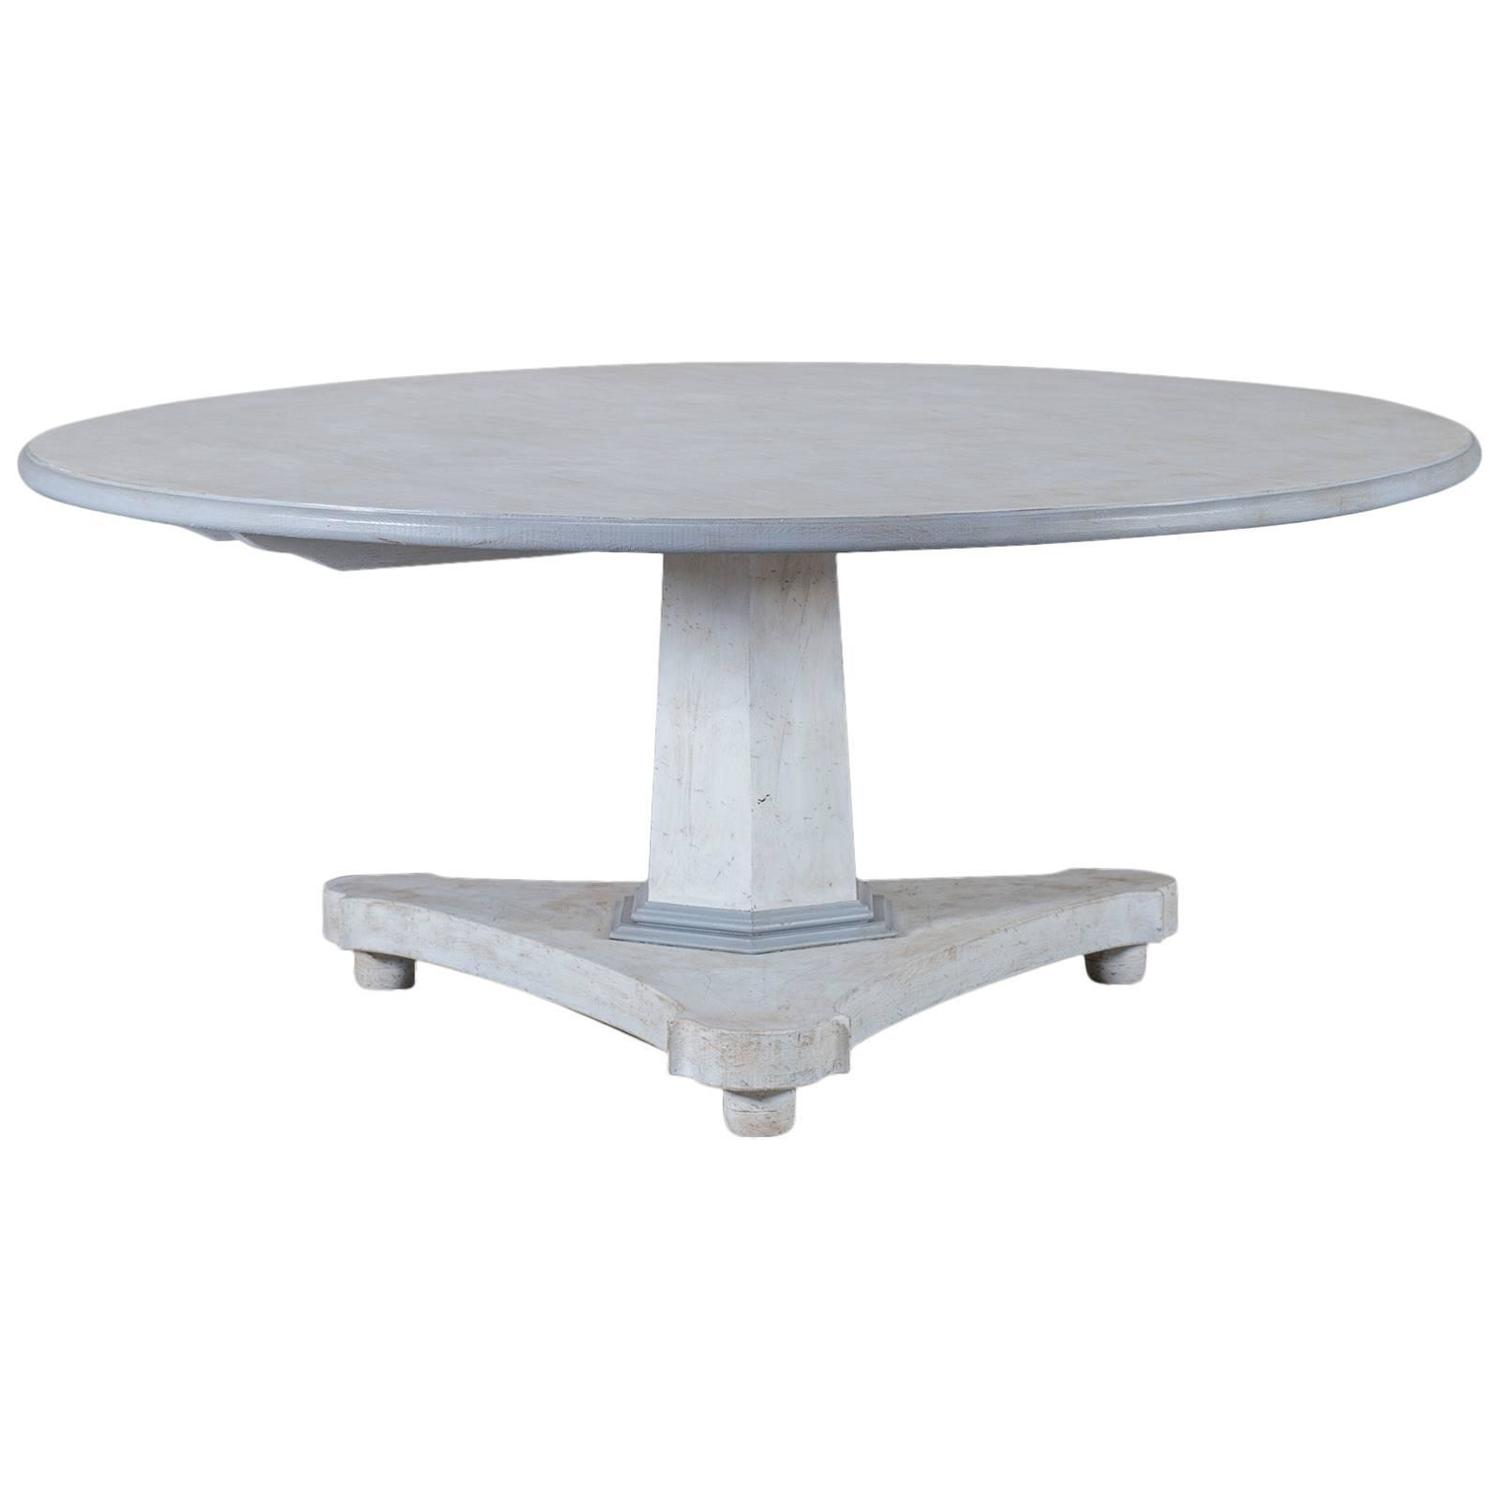 Round painted pedestal dining table from england at 1stdibs for Painted dining table